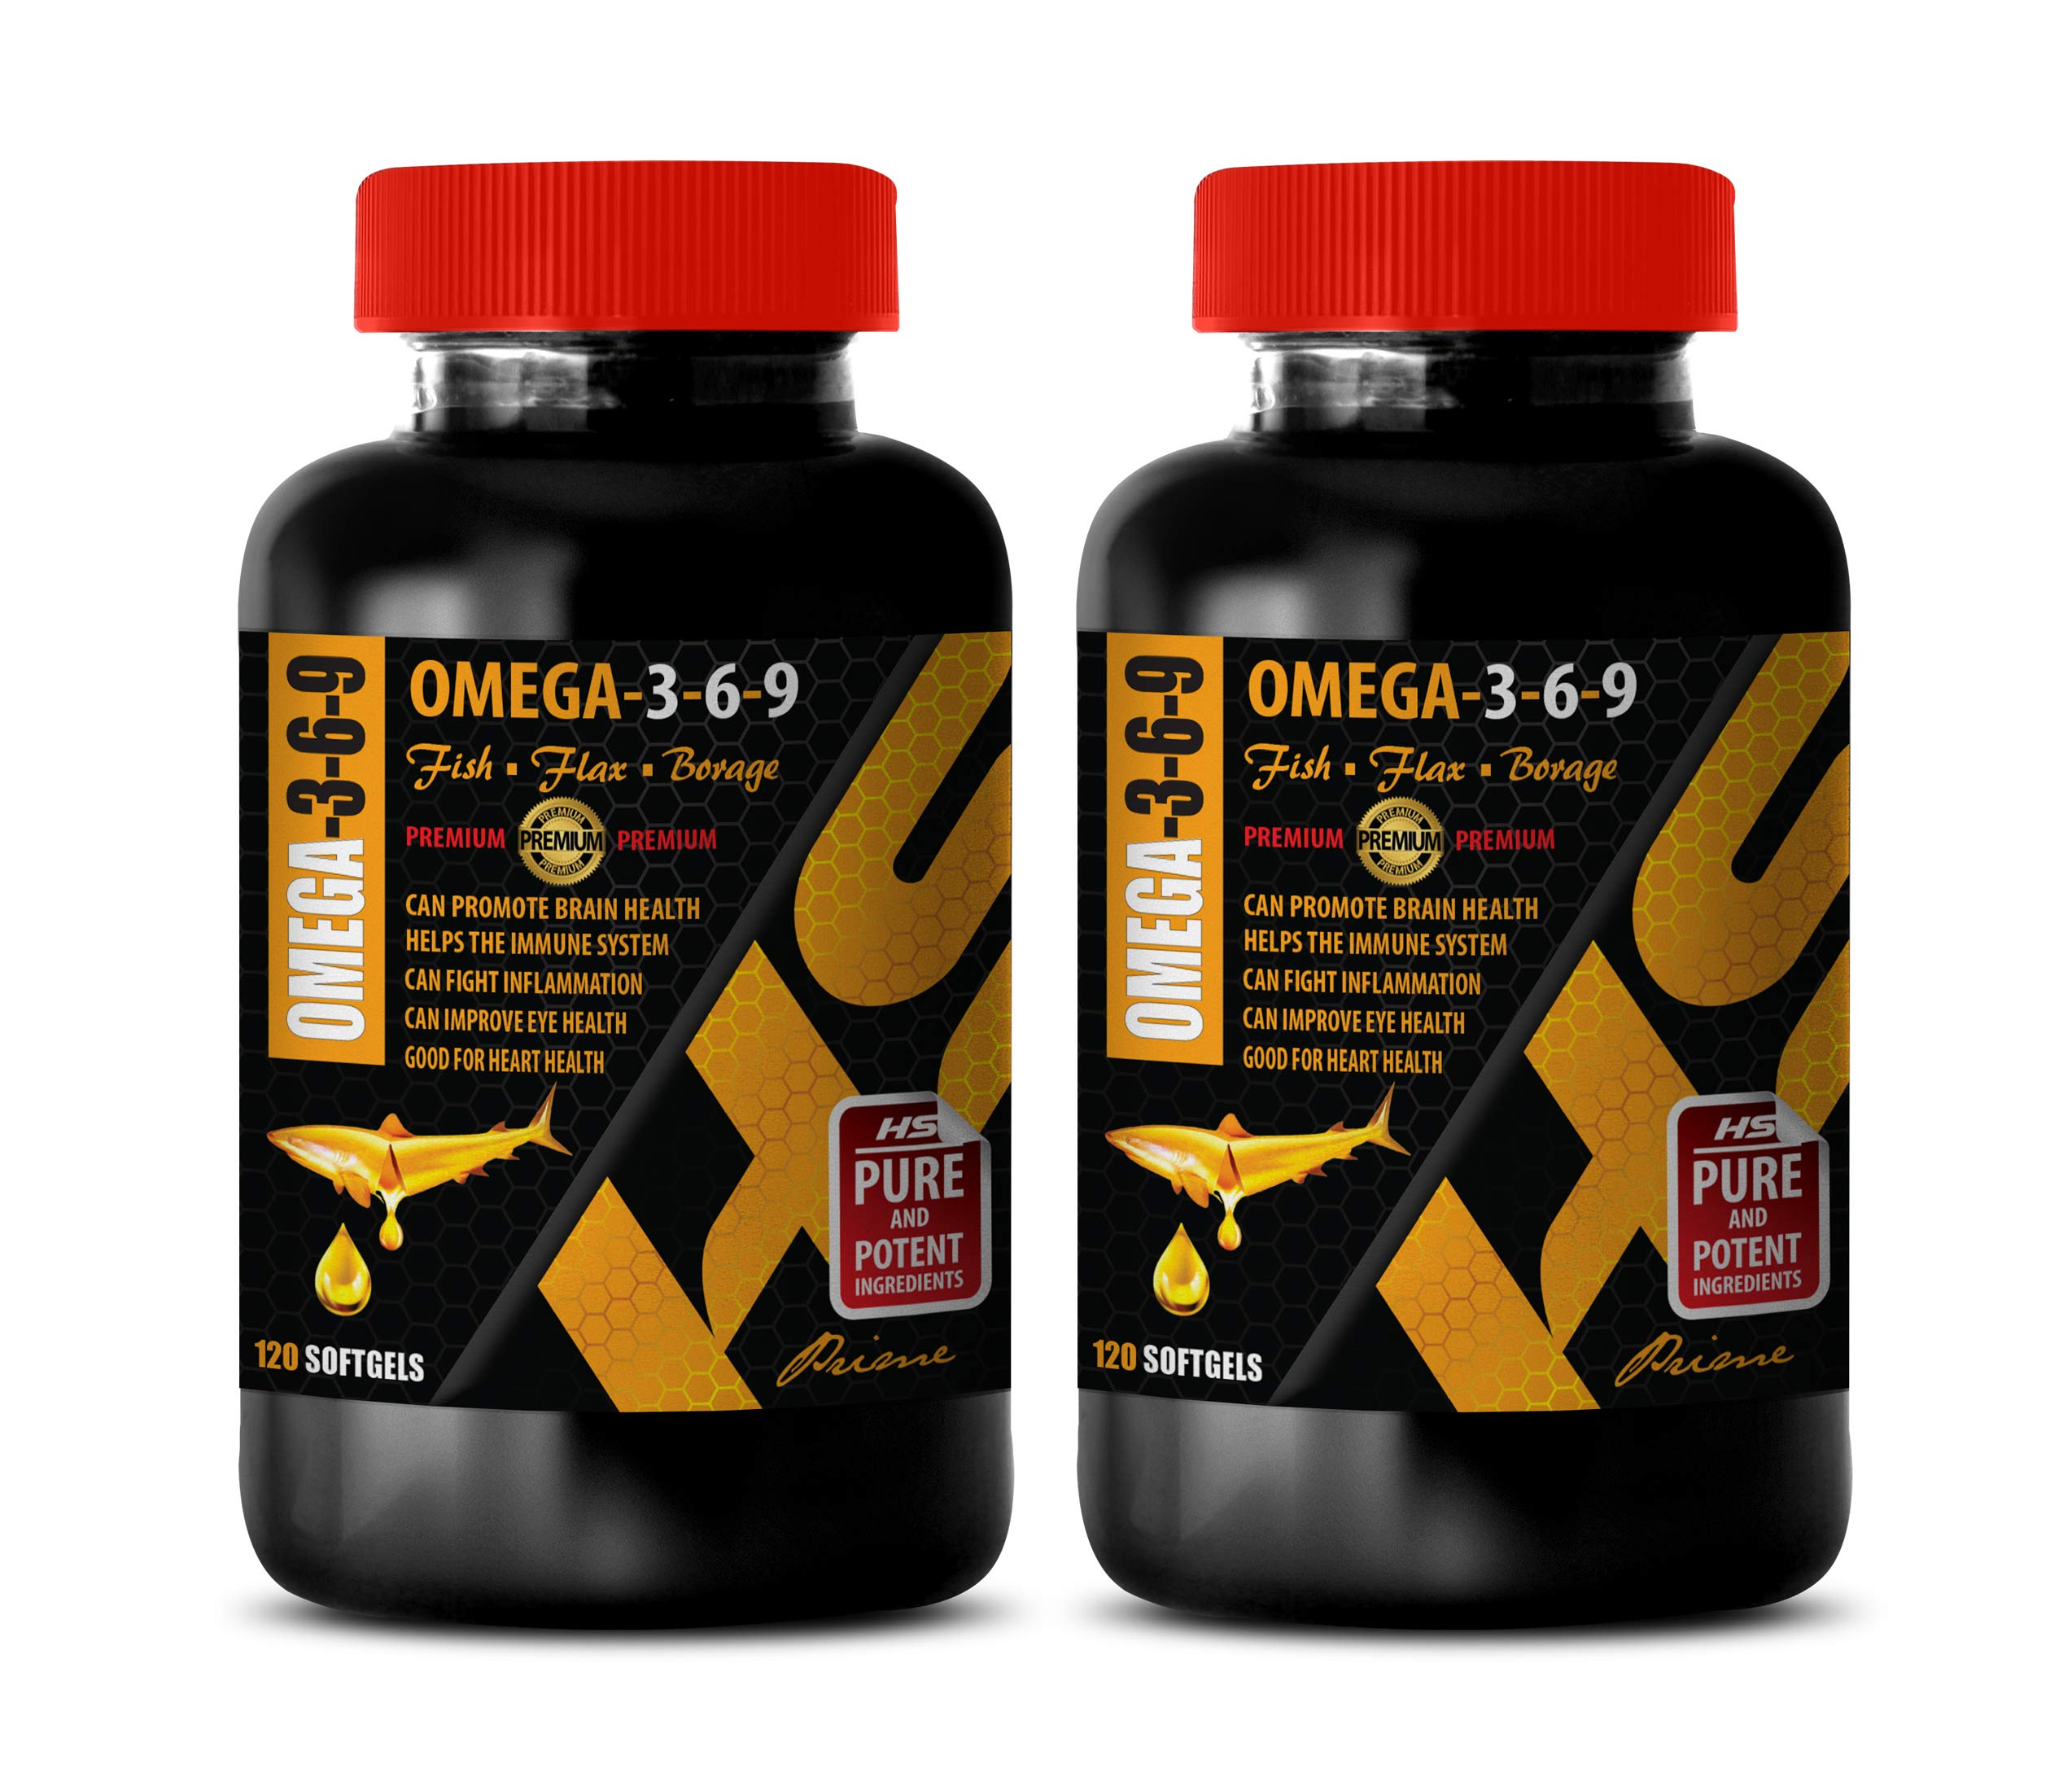 Brain Health Formula - Omega 3-6-9 Premium Complex with Fish, Flax & Borage - Omega 3 Inflammation - 2 Bottles 240 Softgels by HS PRIME